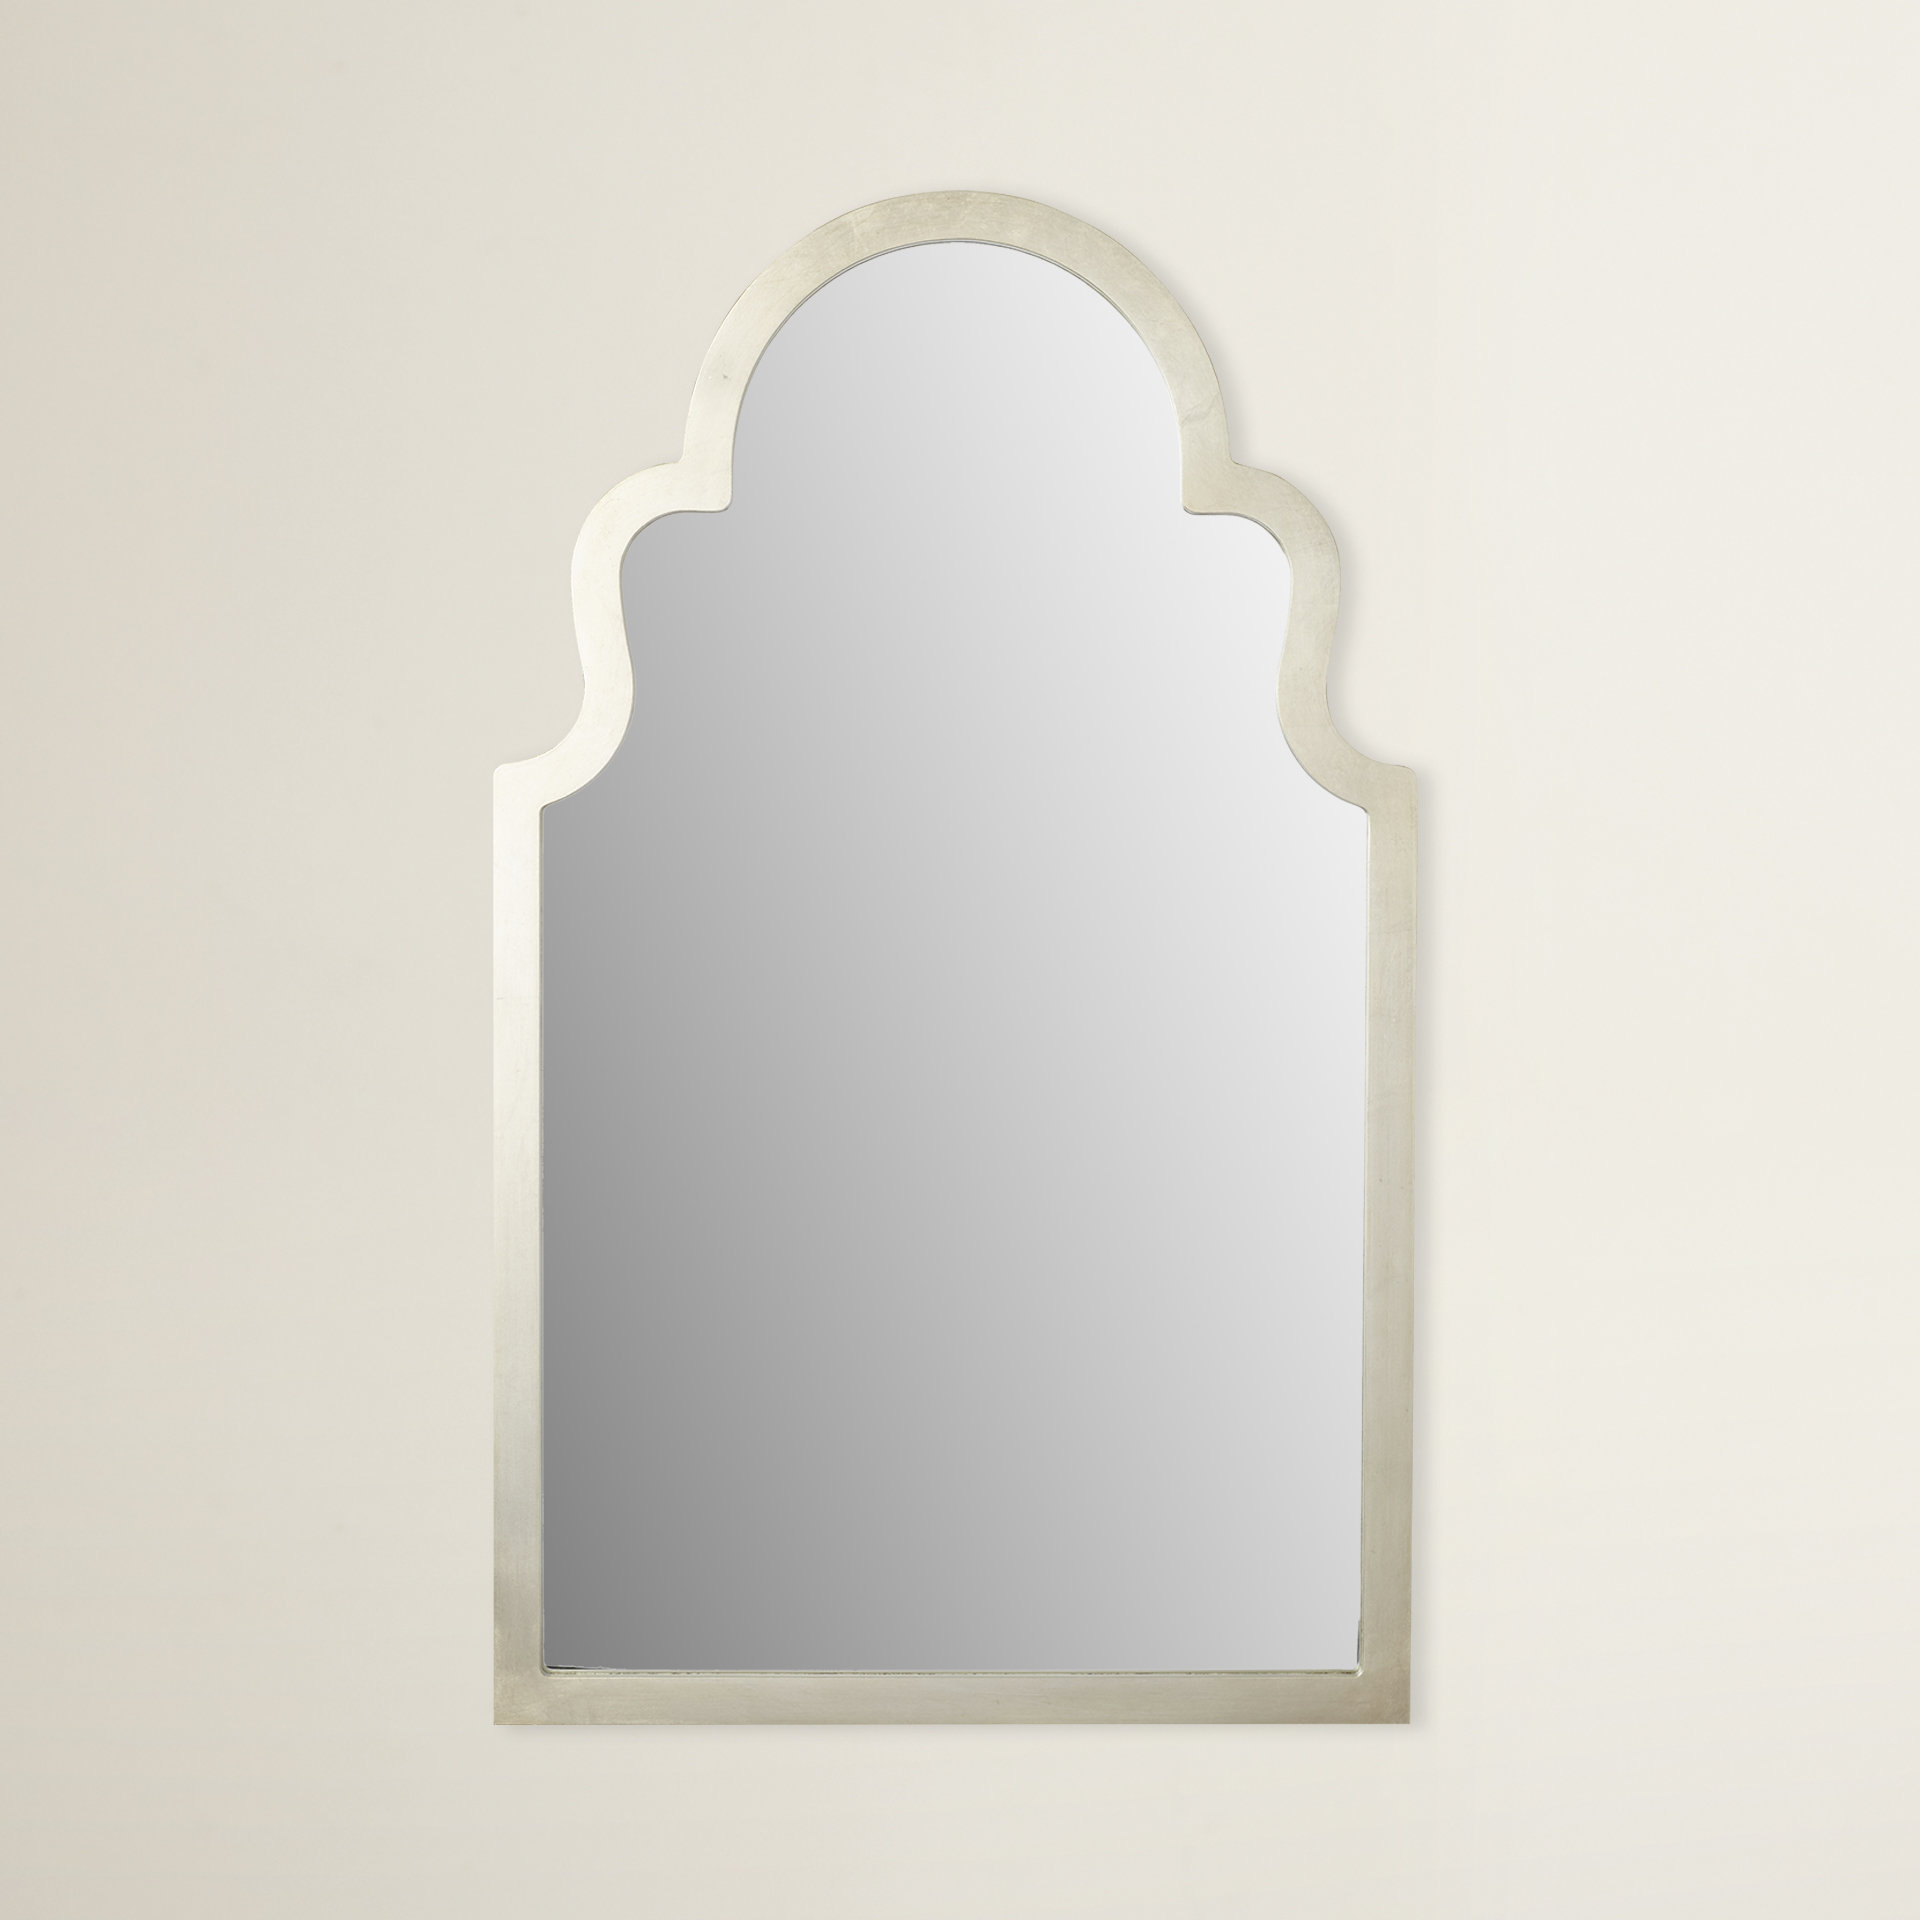 Arch Top Vertical Wall Mirror With Regard To Fifi Contemporary Arch Wall Mirrors (View 5 of 30)